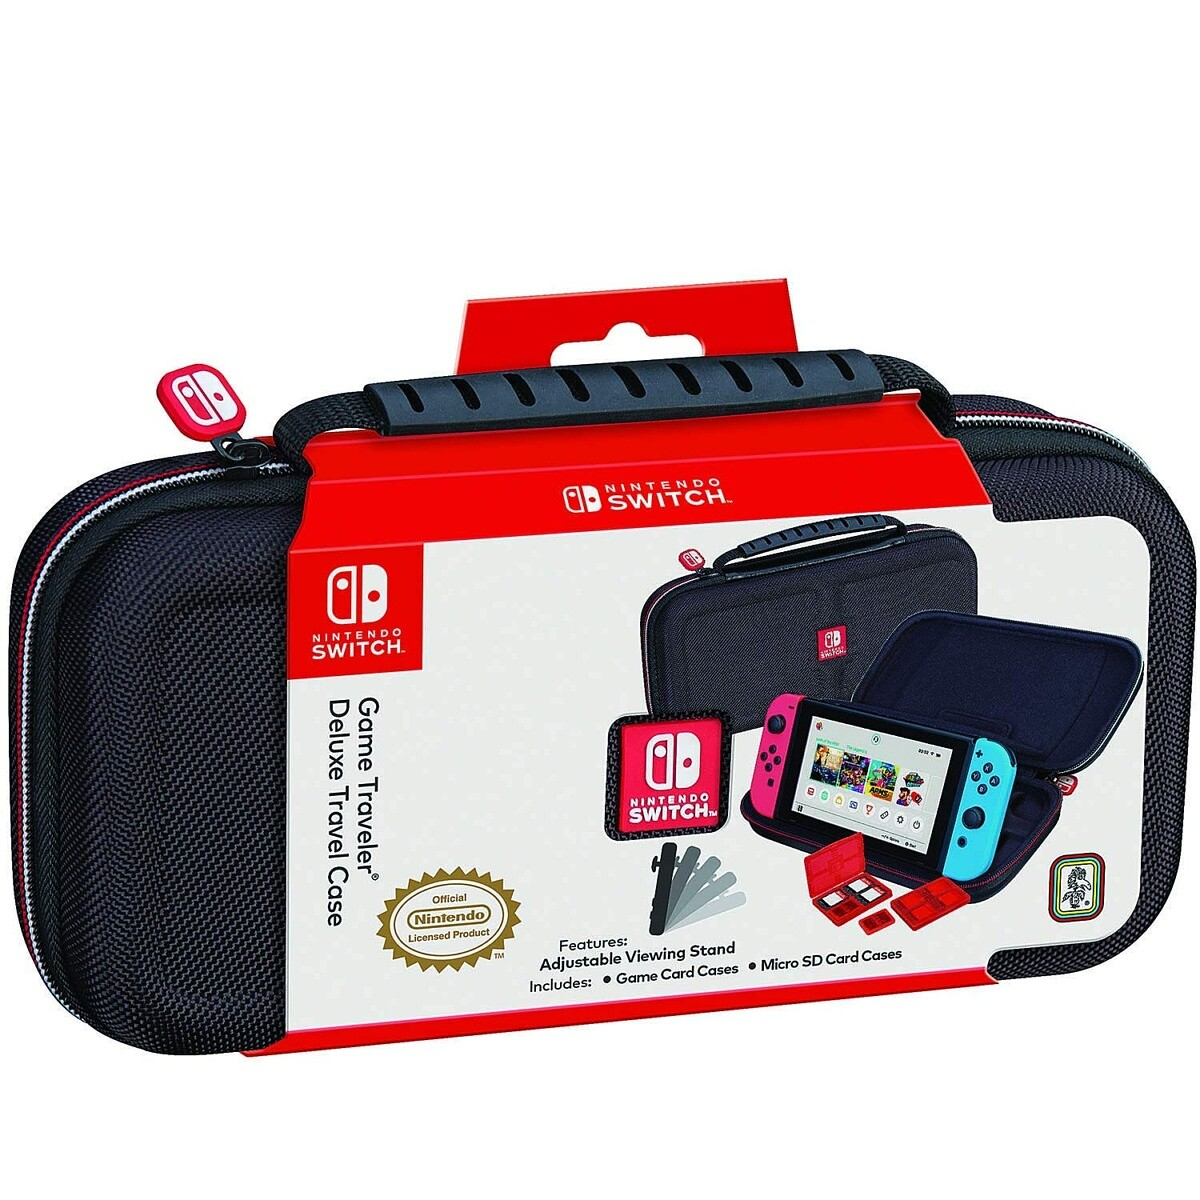 Official Nintendo Switch Carrying Case